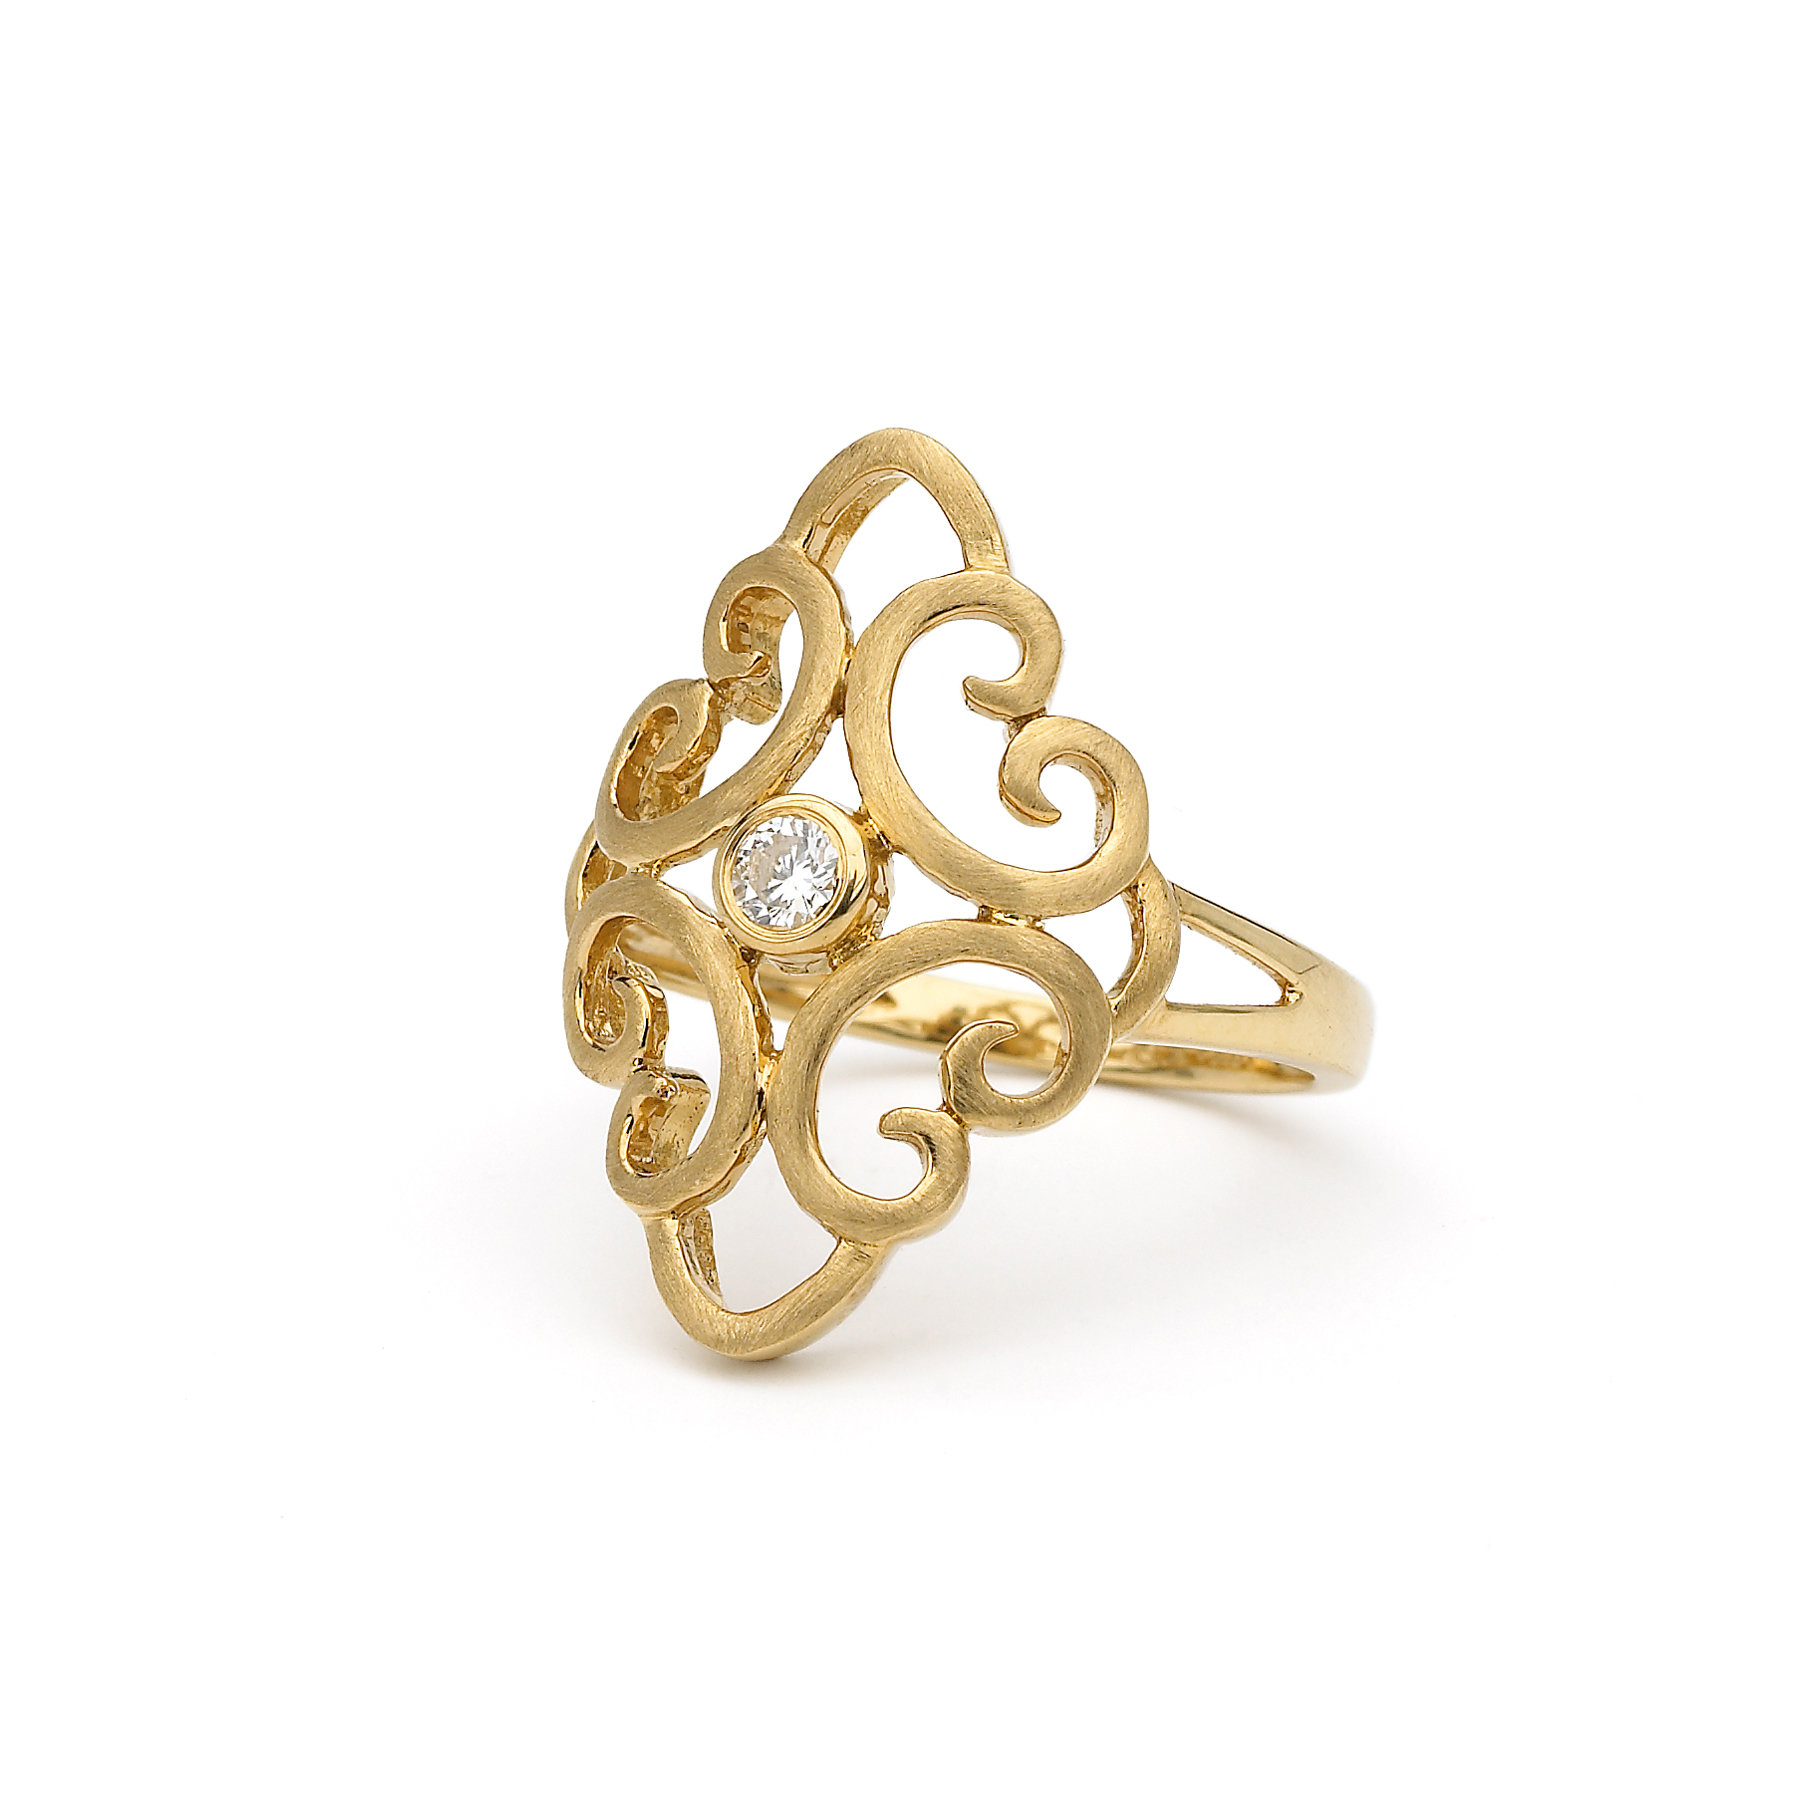 Katie Decker Ring, Fashioned in 18K Yellow Gold, Featuring a .09 Carat Round Diamond